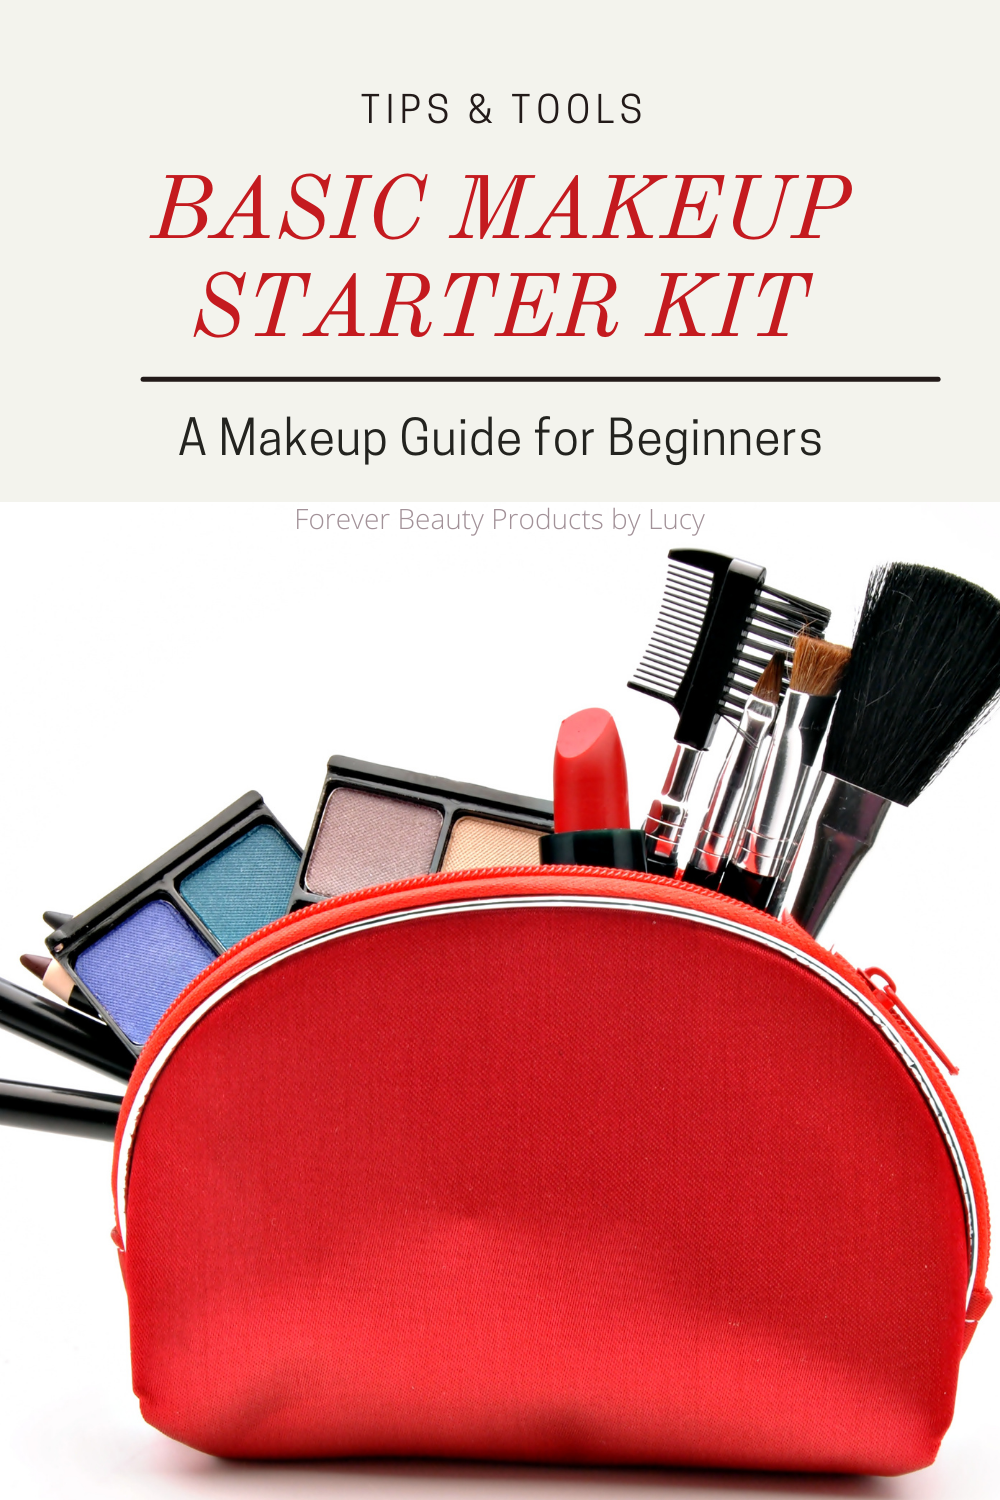 Makeup Guide for Beginners 11 Must-Have Makeup Products